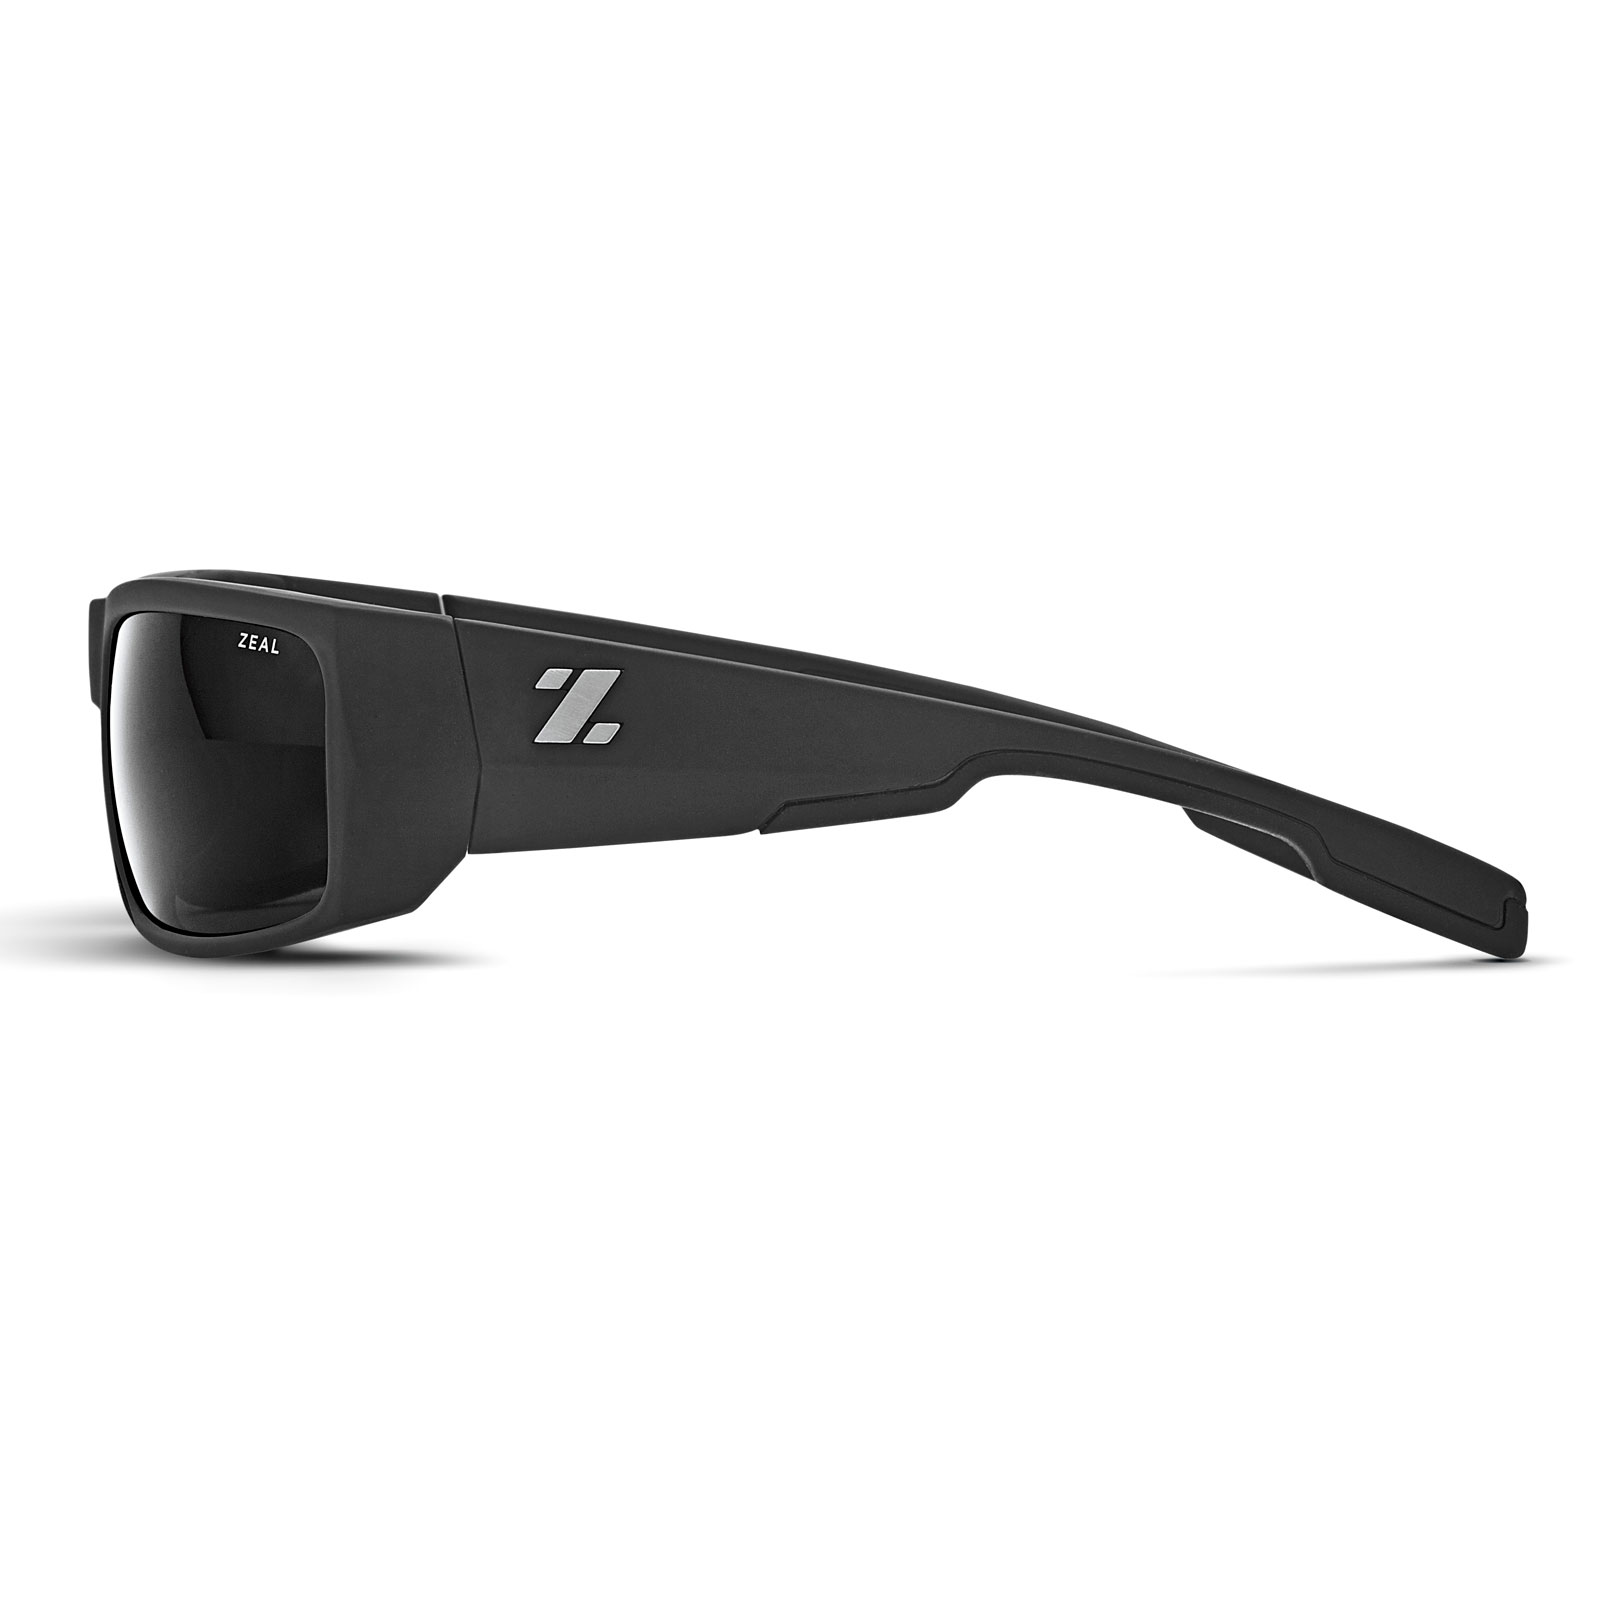 22de3af429f Zeal Optics - Zeal Optics Snapshot Sunglasses Eyewear UV Protection  Polarized Durable - Walmart.com